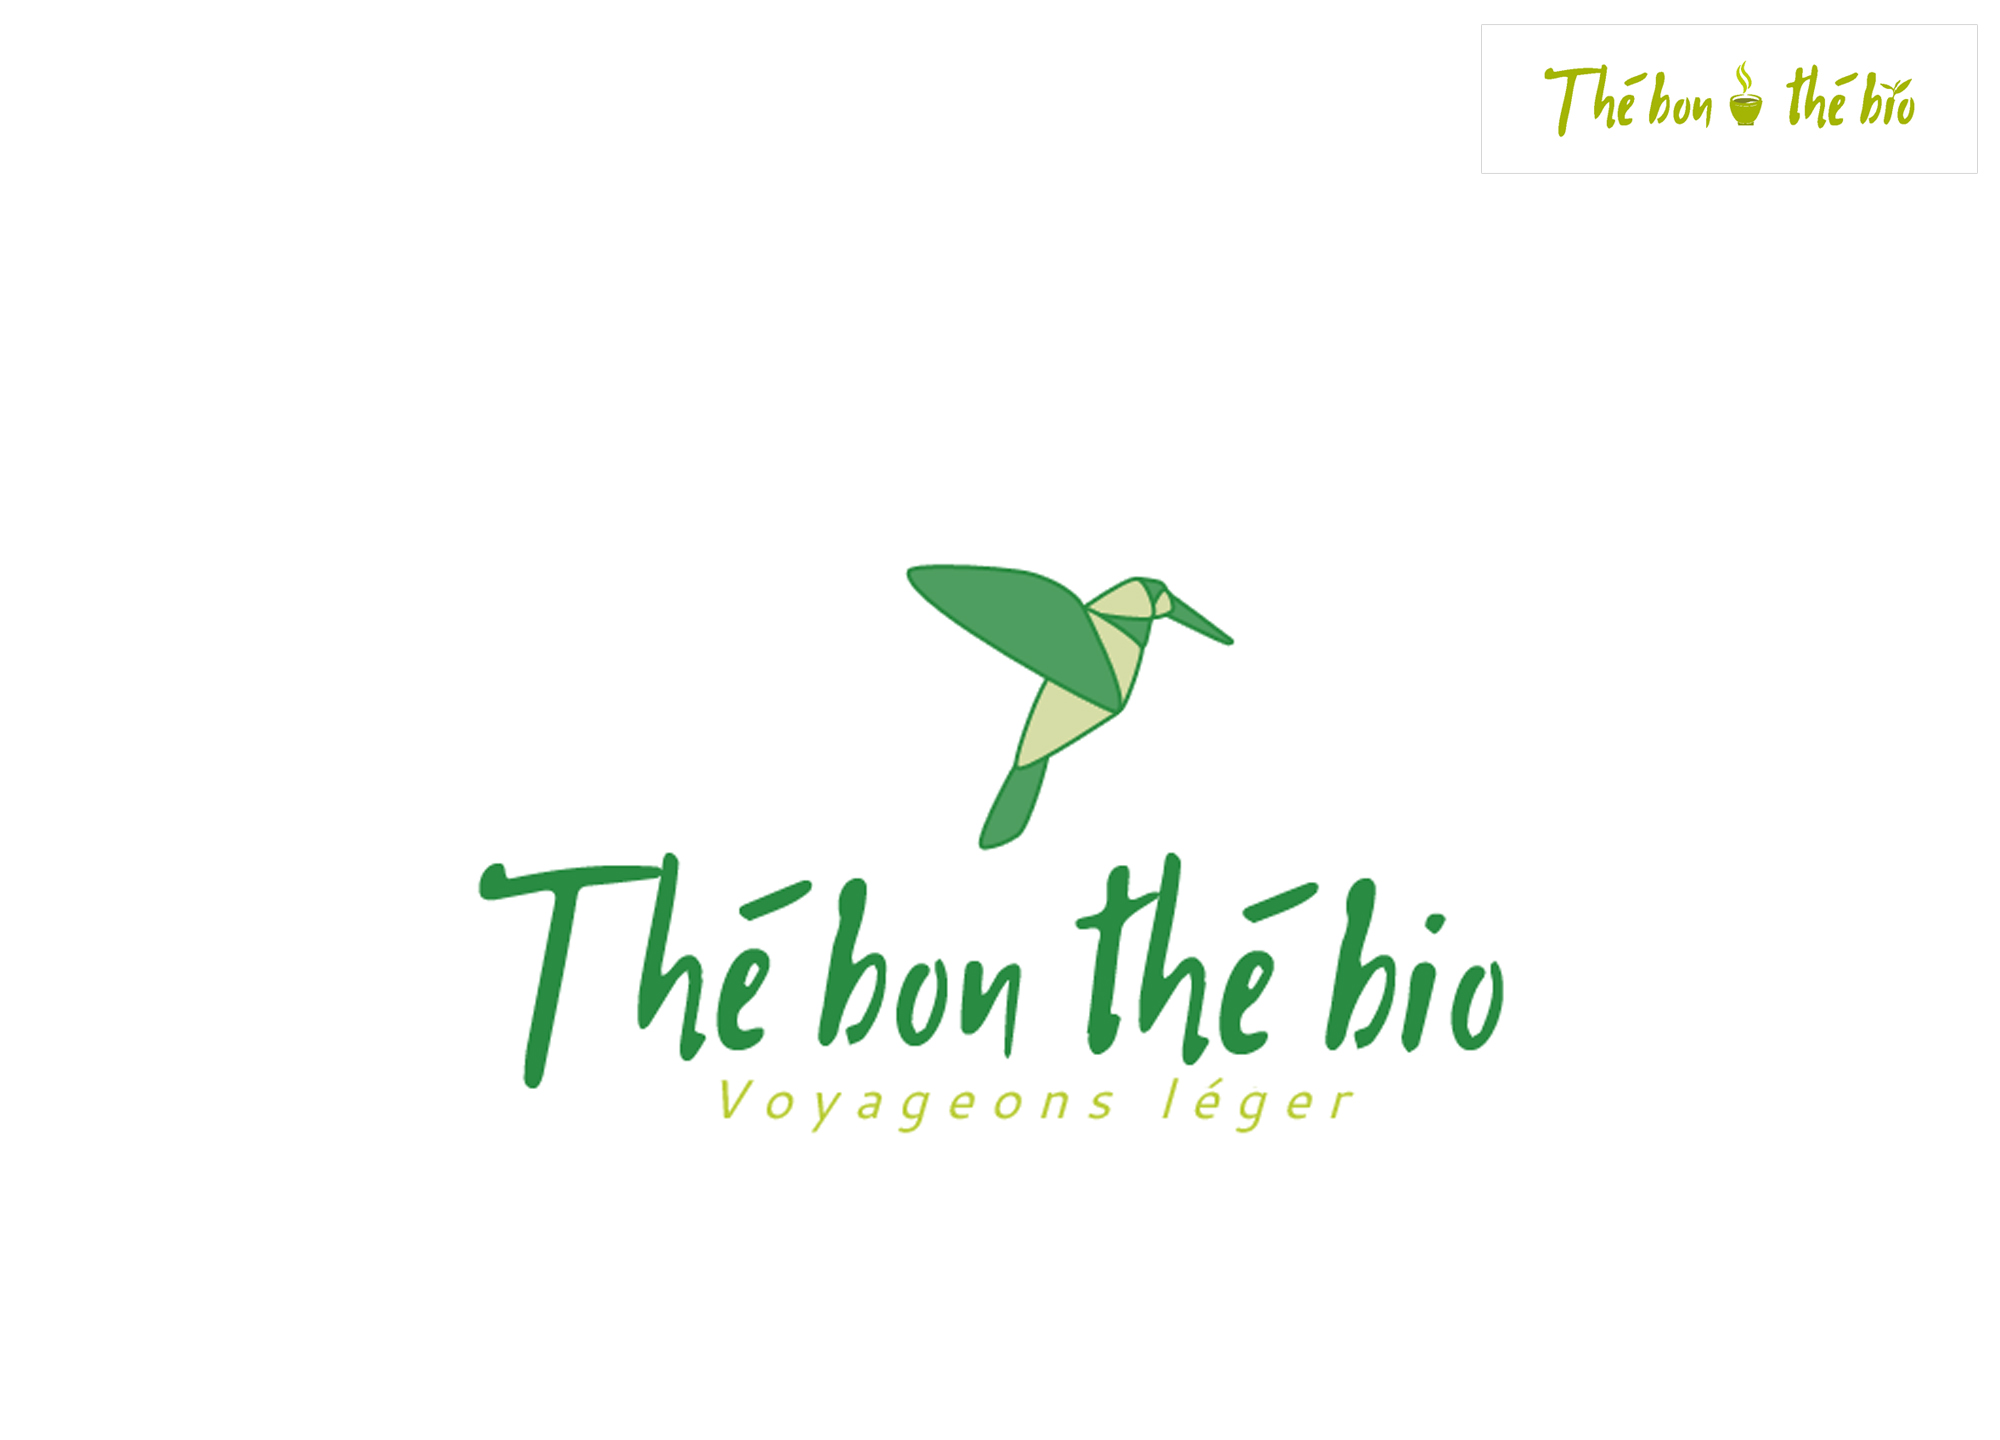 logo_thé_bon_thé_bio_-_new_design_-_An